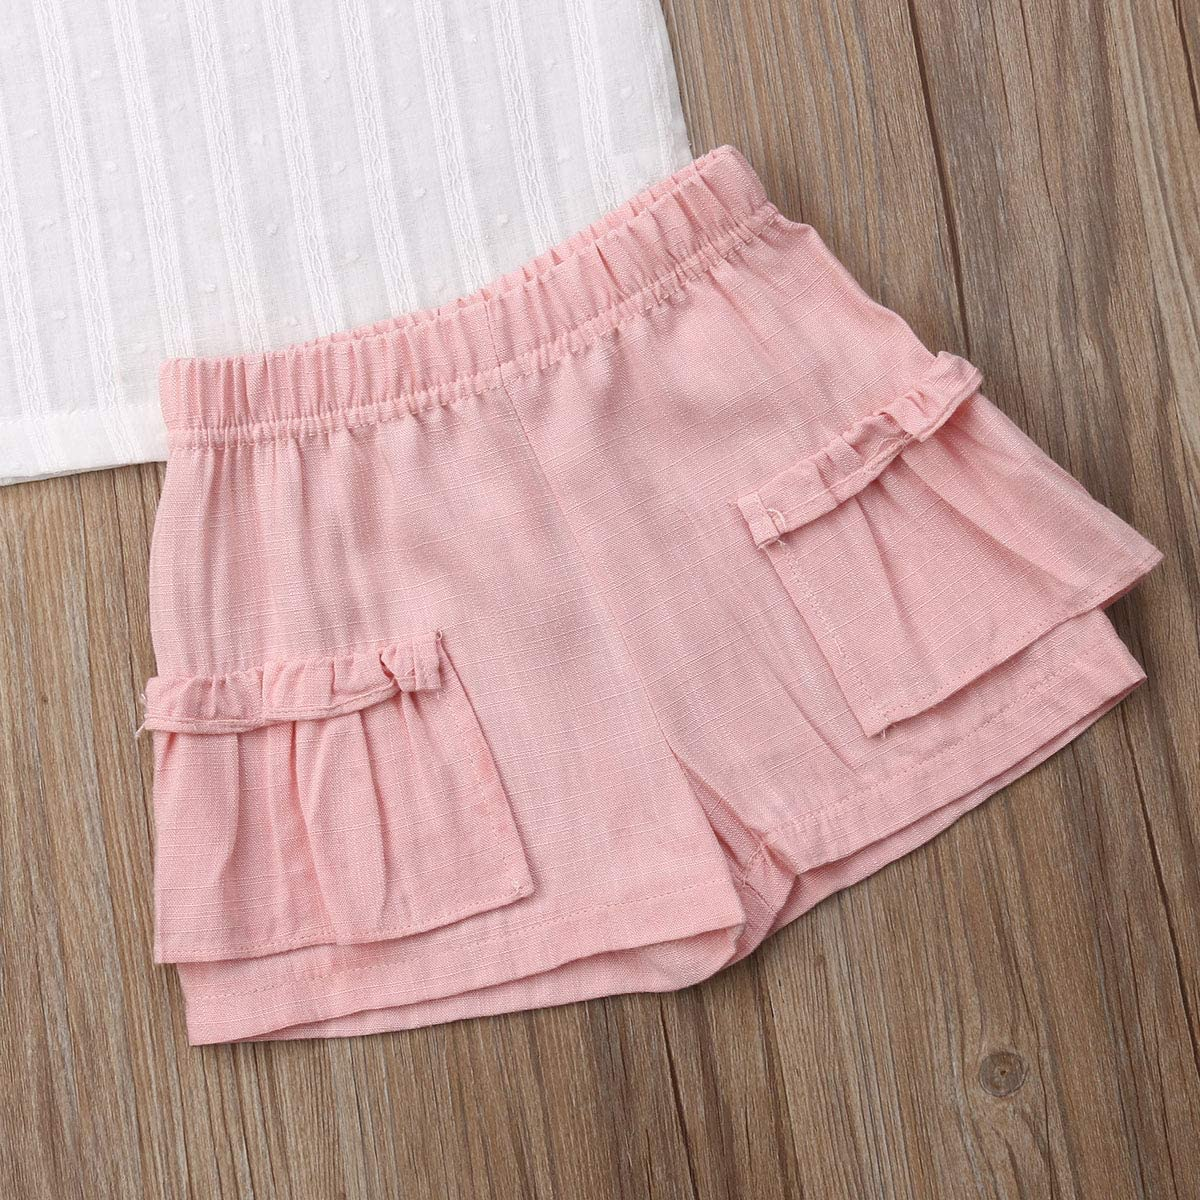 Infant Kid Baby Girls Summer Outfit Fly Sleeve Top Ruffled T-Shirt Blouse Pink Shorts Pants Clothing Set 6M-6Y